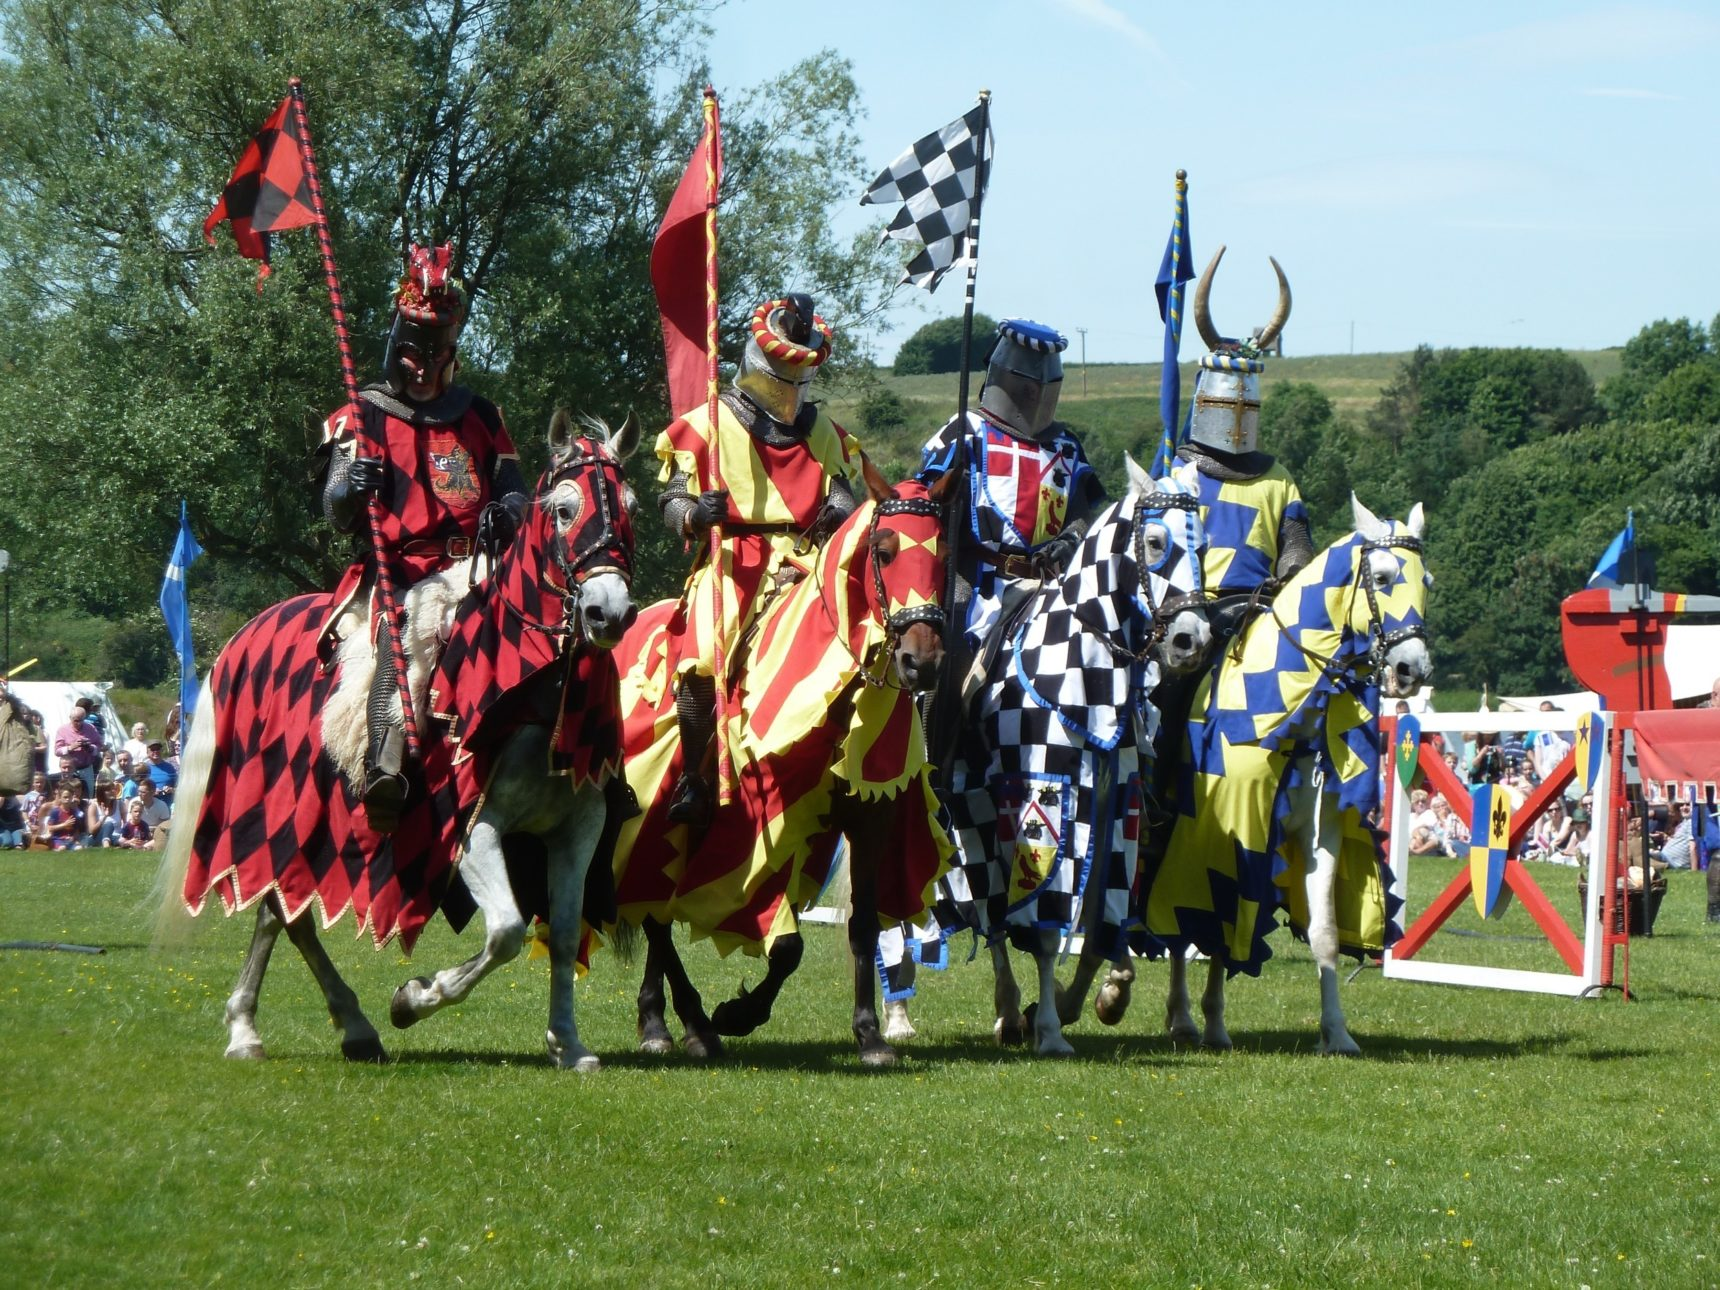 4 mounted knights dressed in medieval costume stand side by side